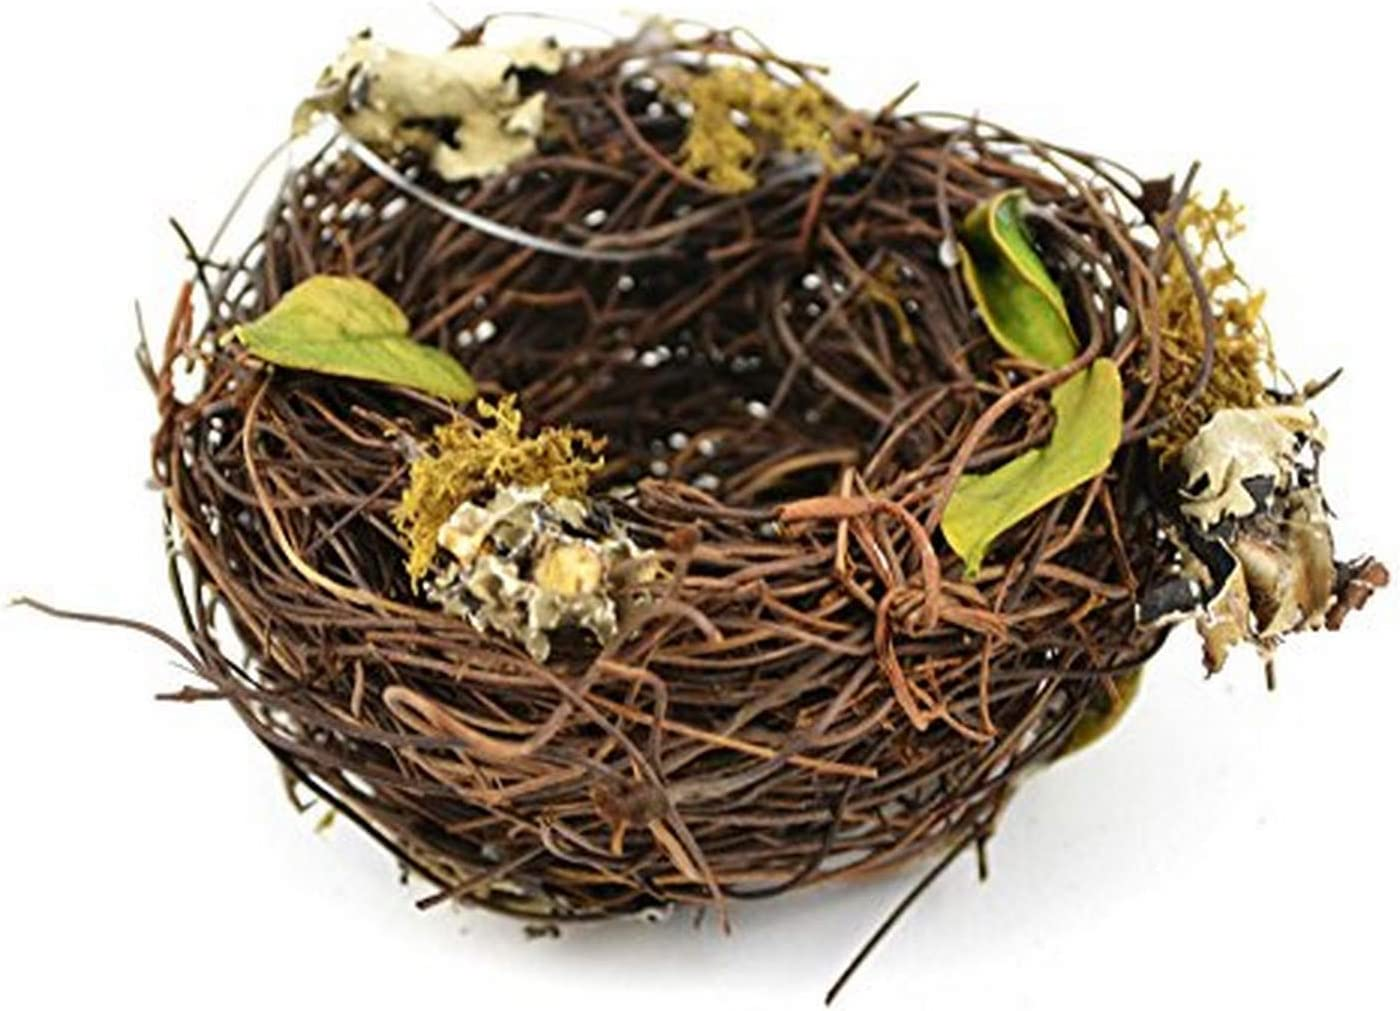 Touch of Nature Artificial Vine Nest 3 Inch with Leaves 1Pc